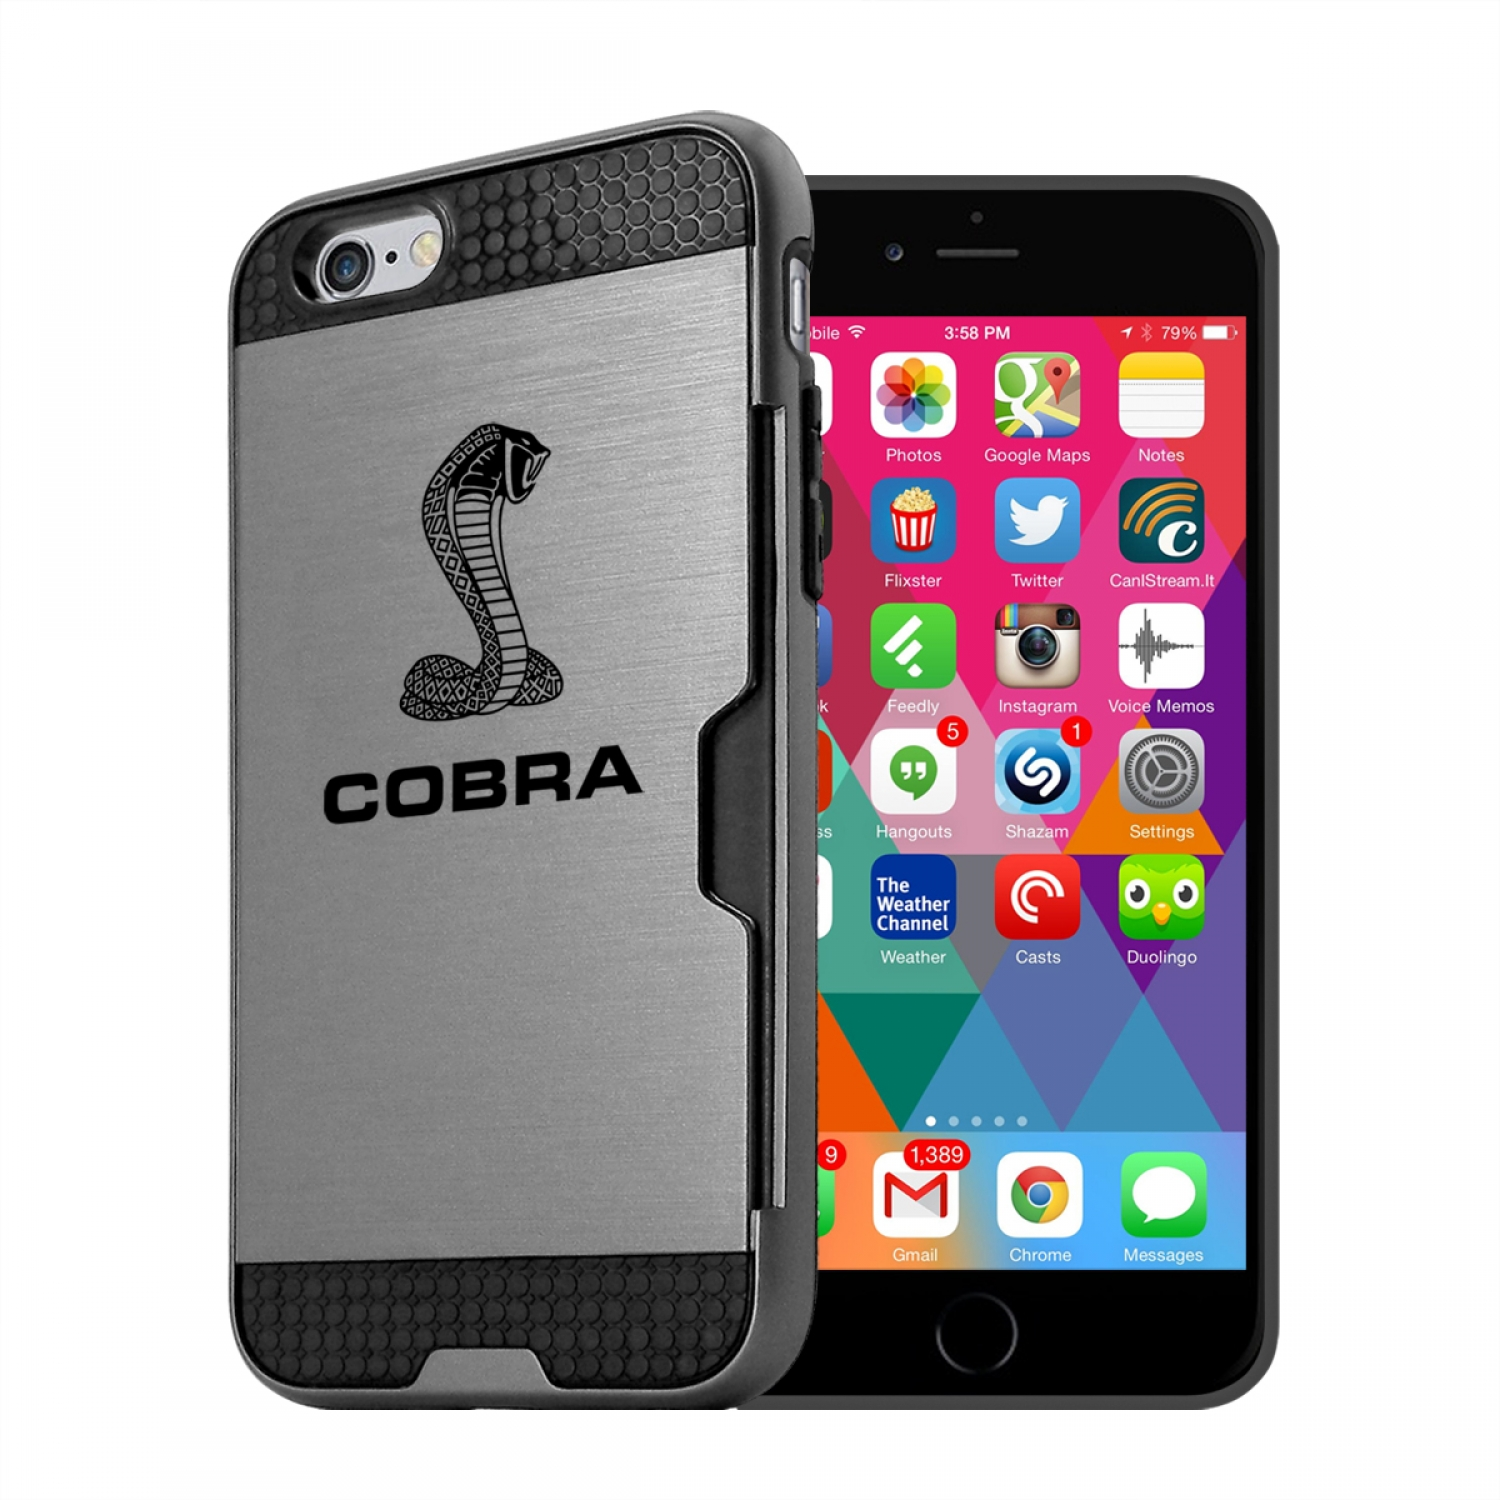 Ford Mustang Cobra iPhone 6 6s Ultra Thin TPU Silver Phone Case with Credit Card Slot Wallet